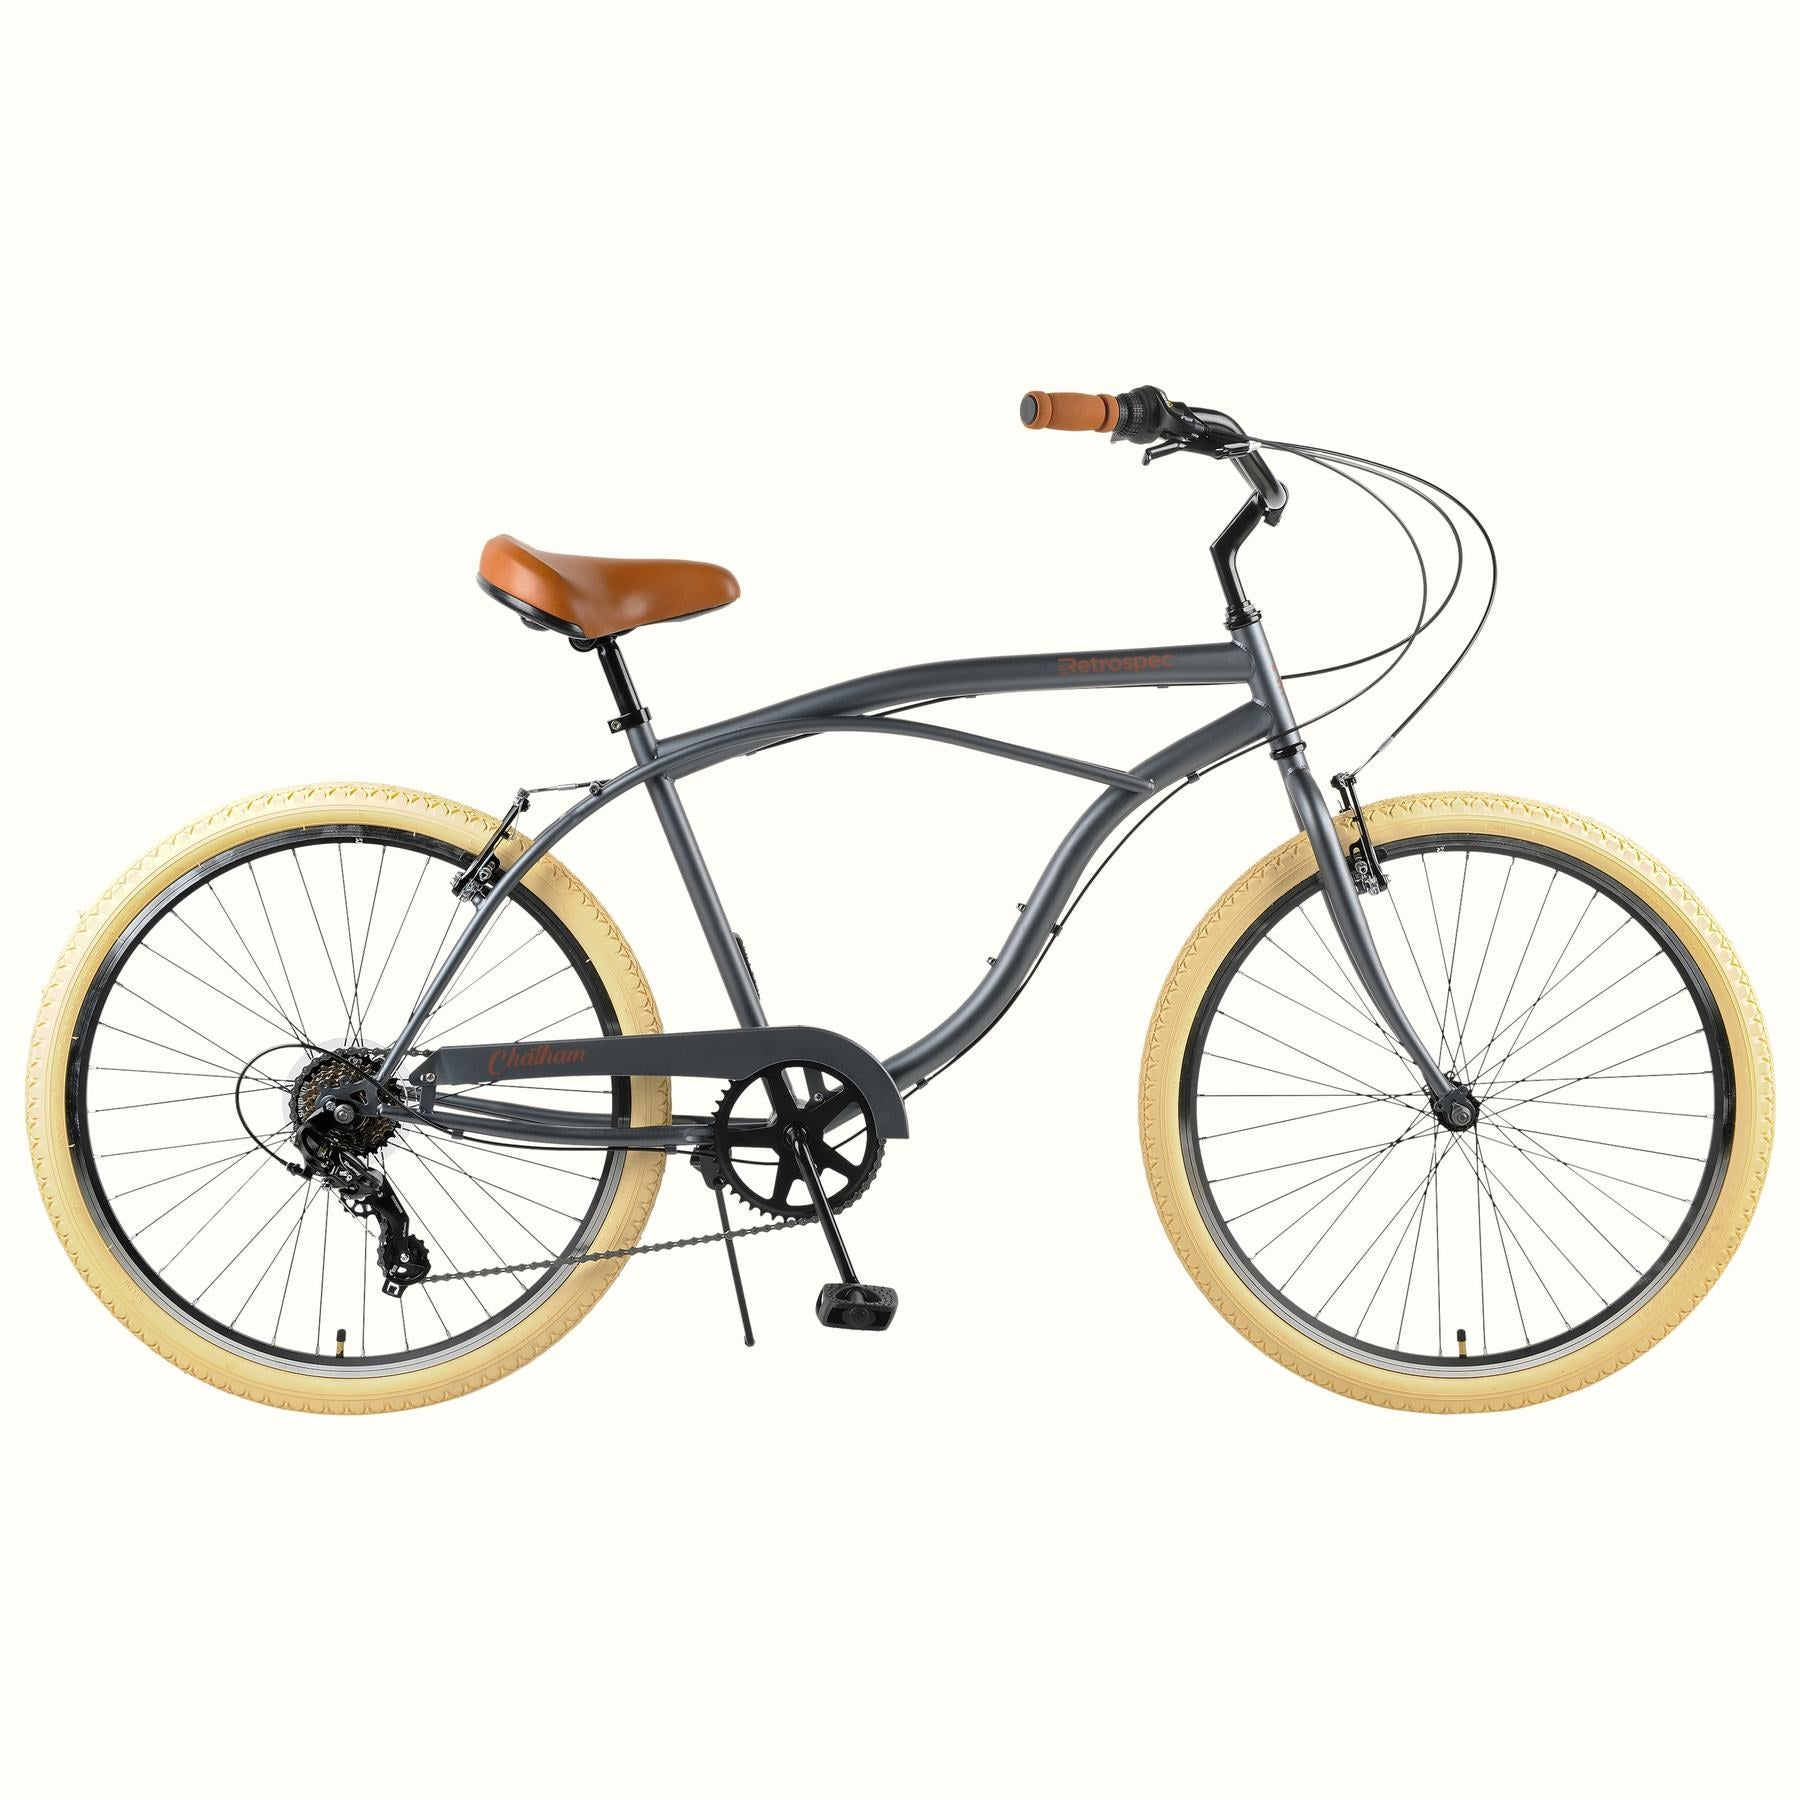 "Chatham 26"" Beach Cruiser 7S - Graphite/Beige"